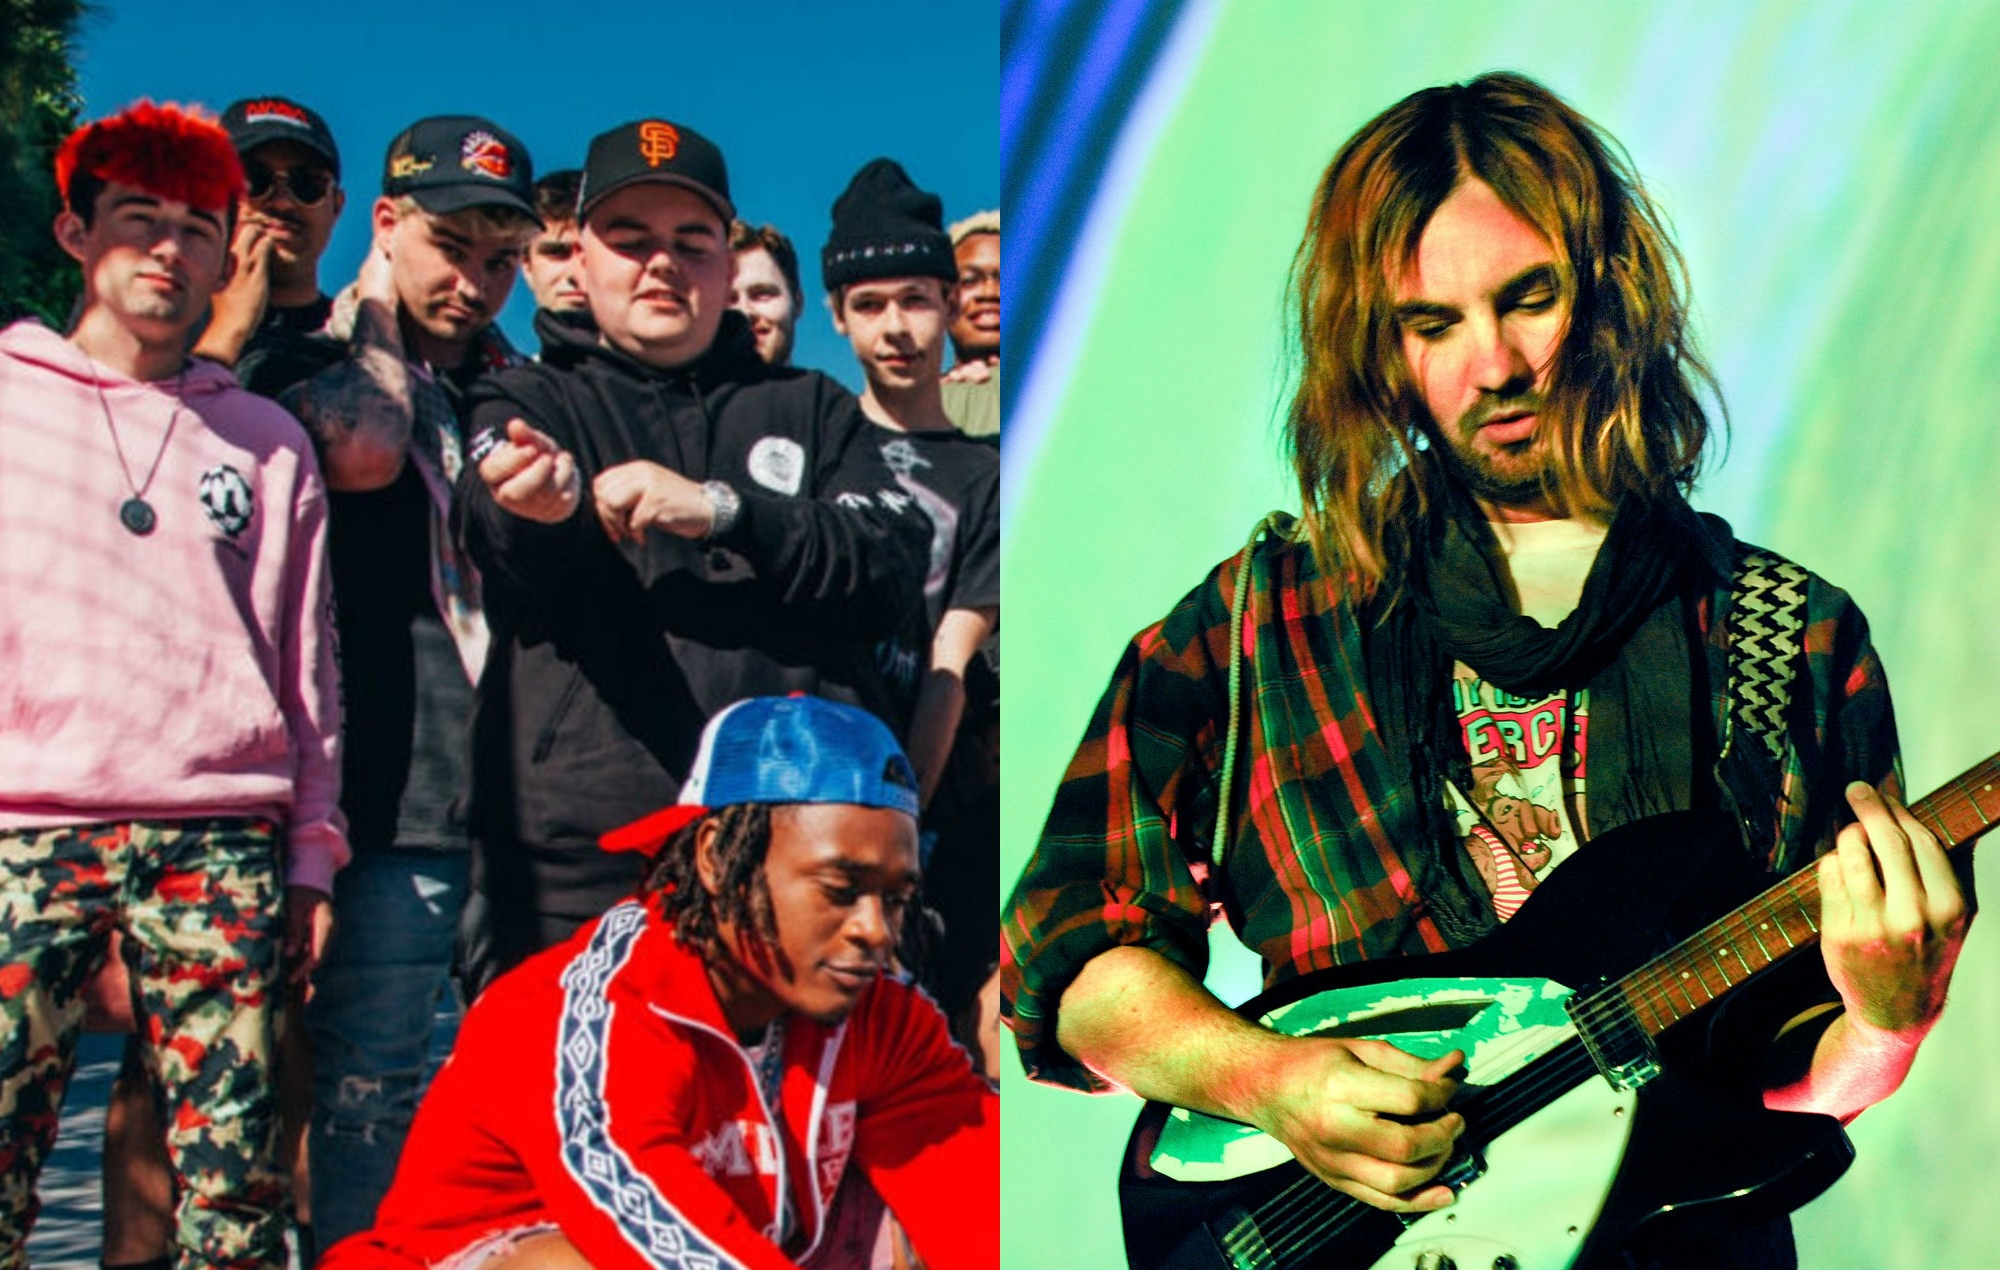 Internet Money founder says he's been working with Tame Impala's Kevin Parker